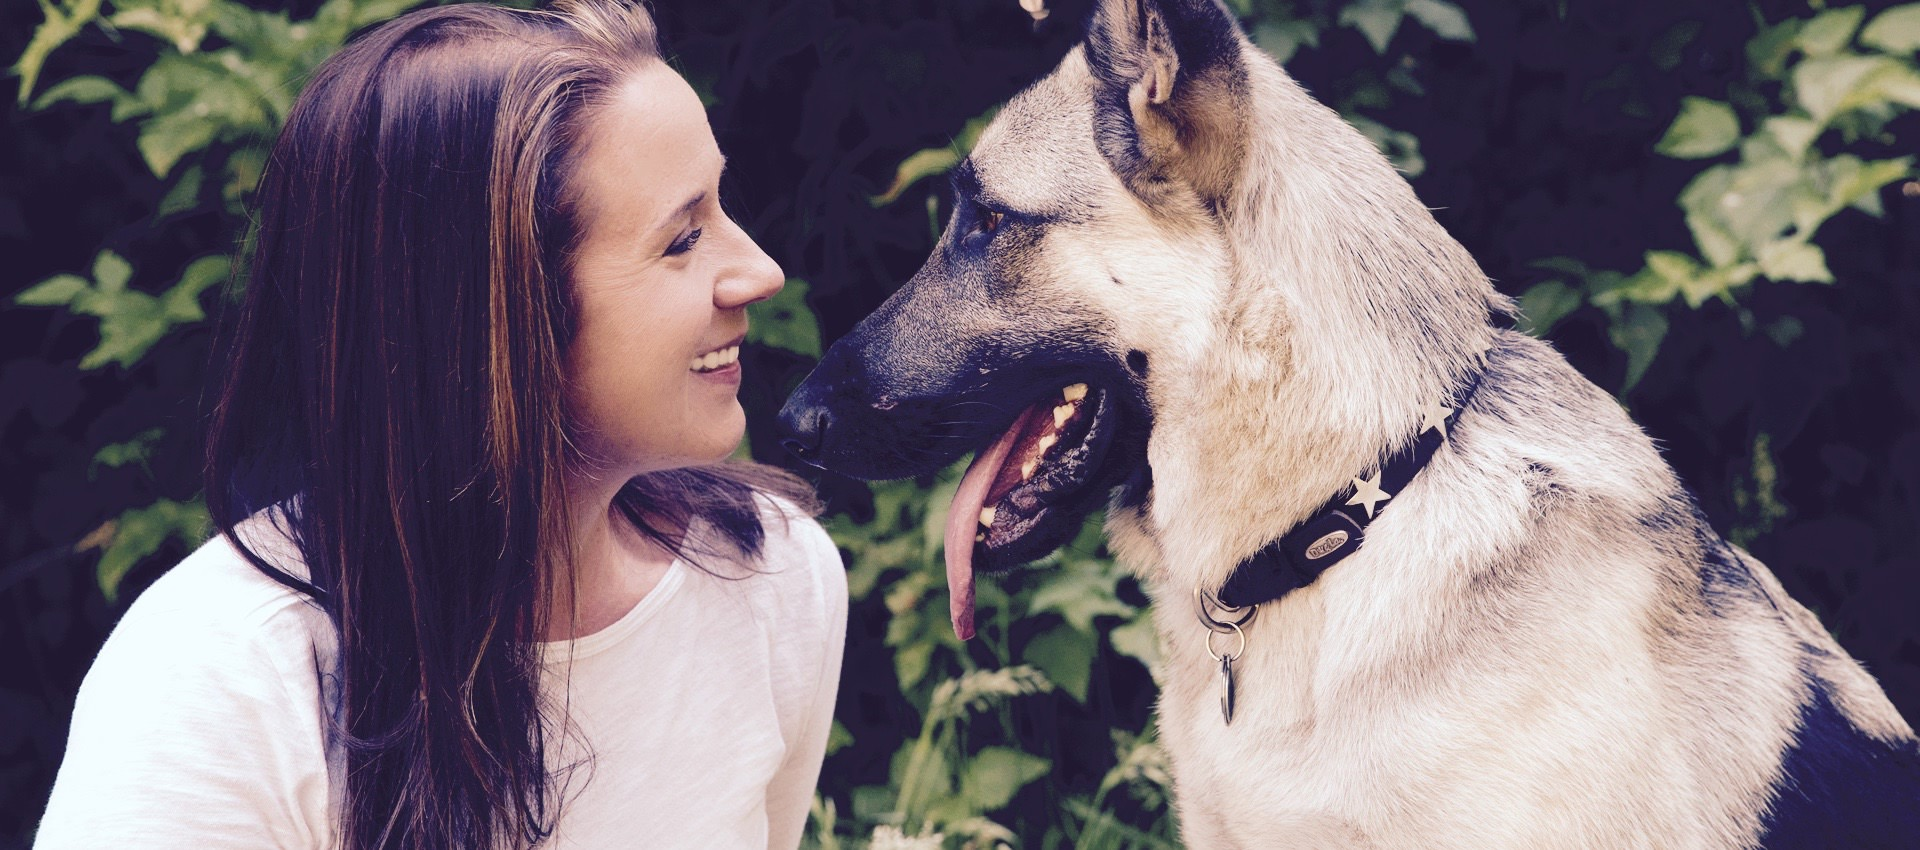 Image of a woman with a german shepherd dog